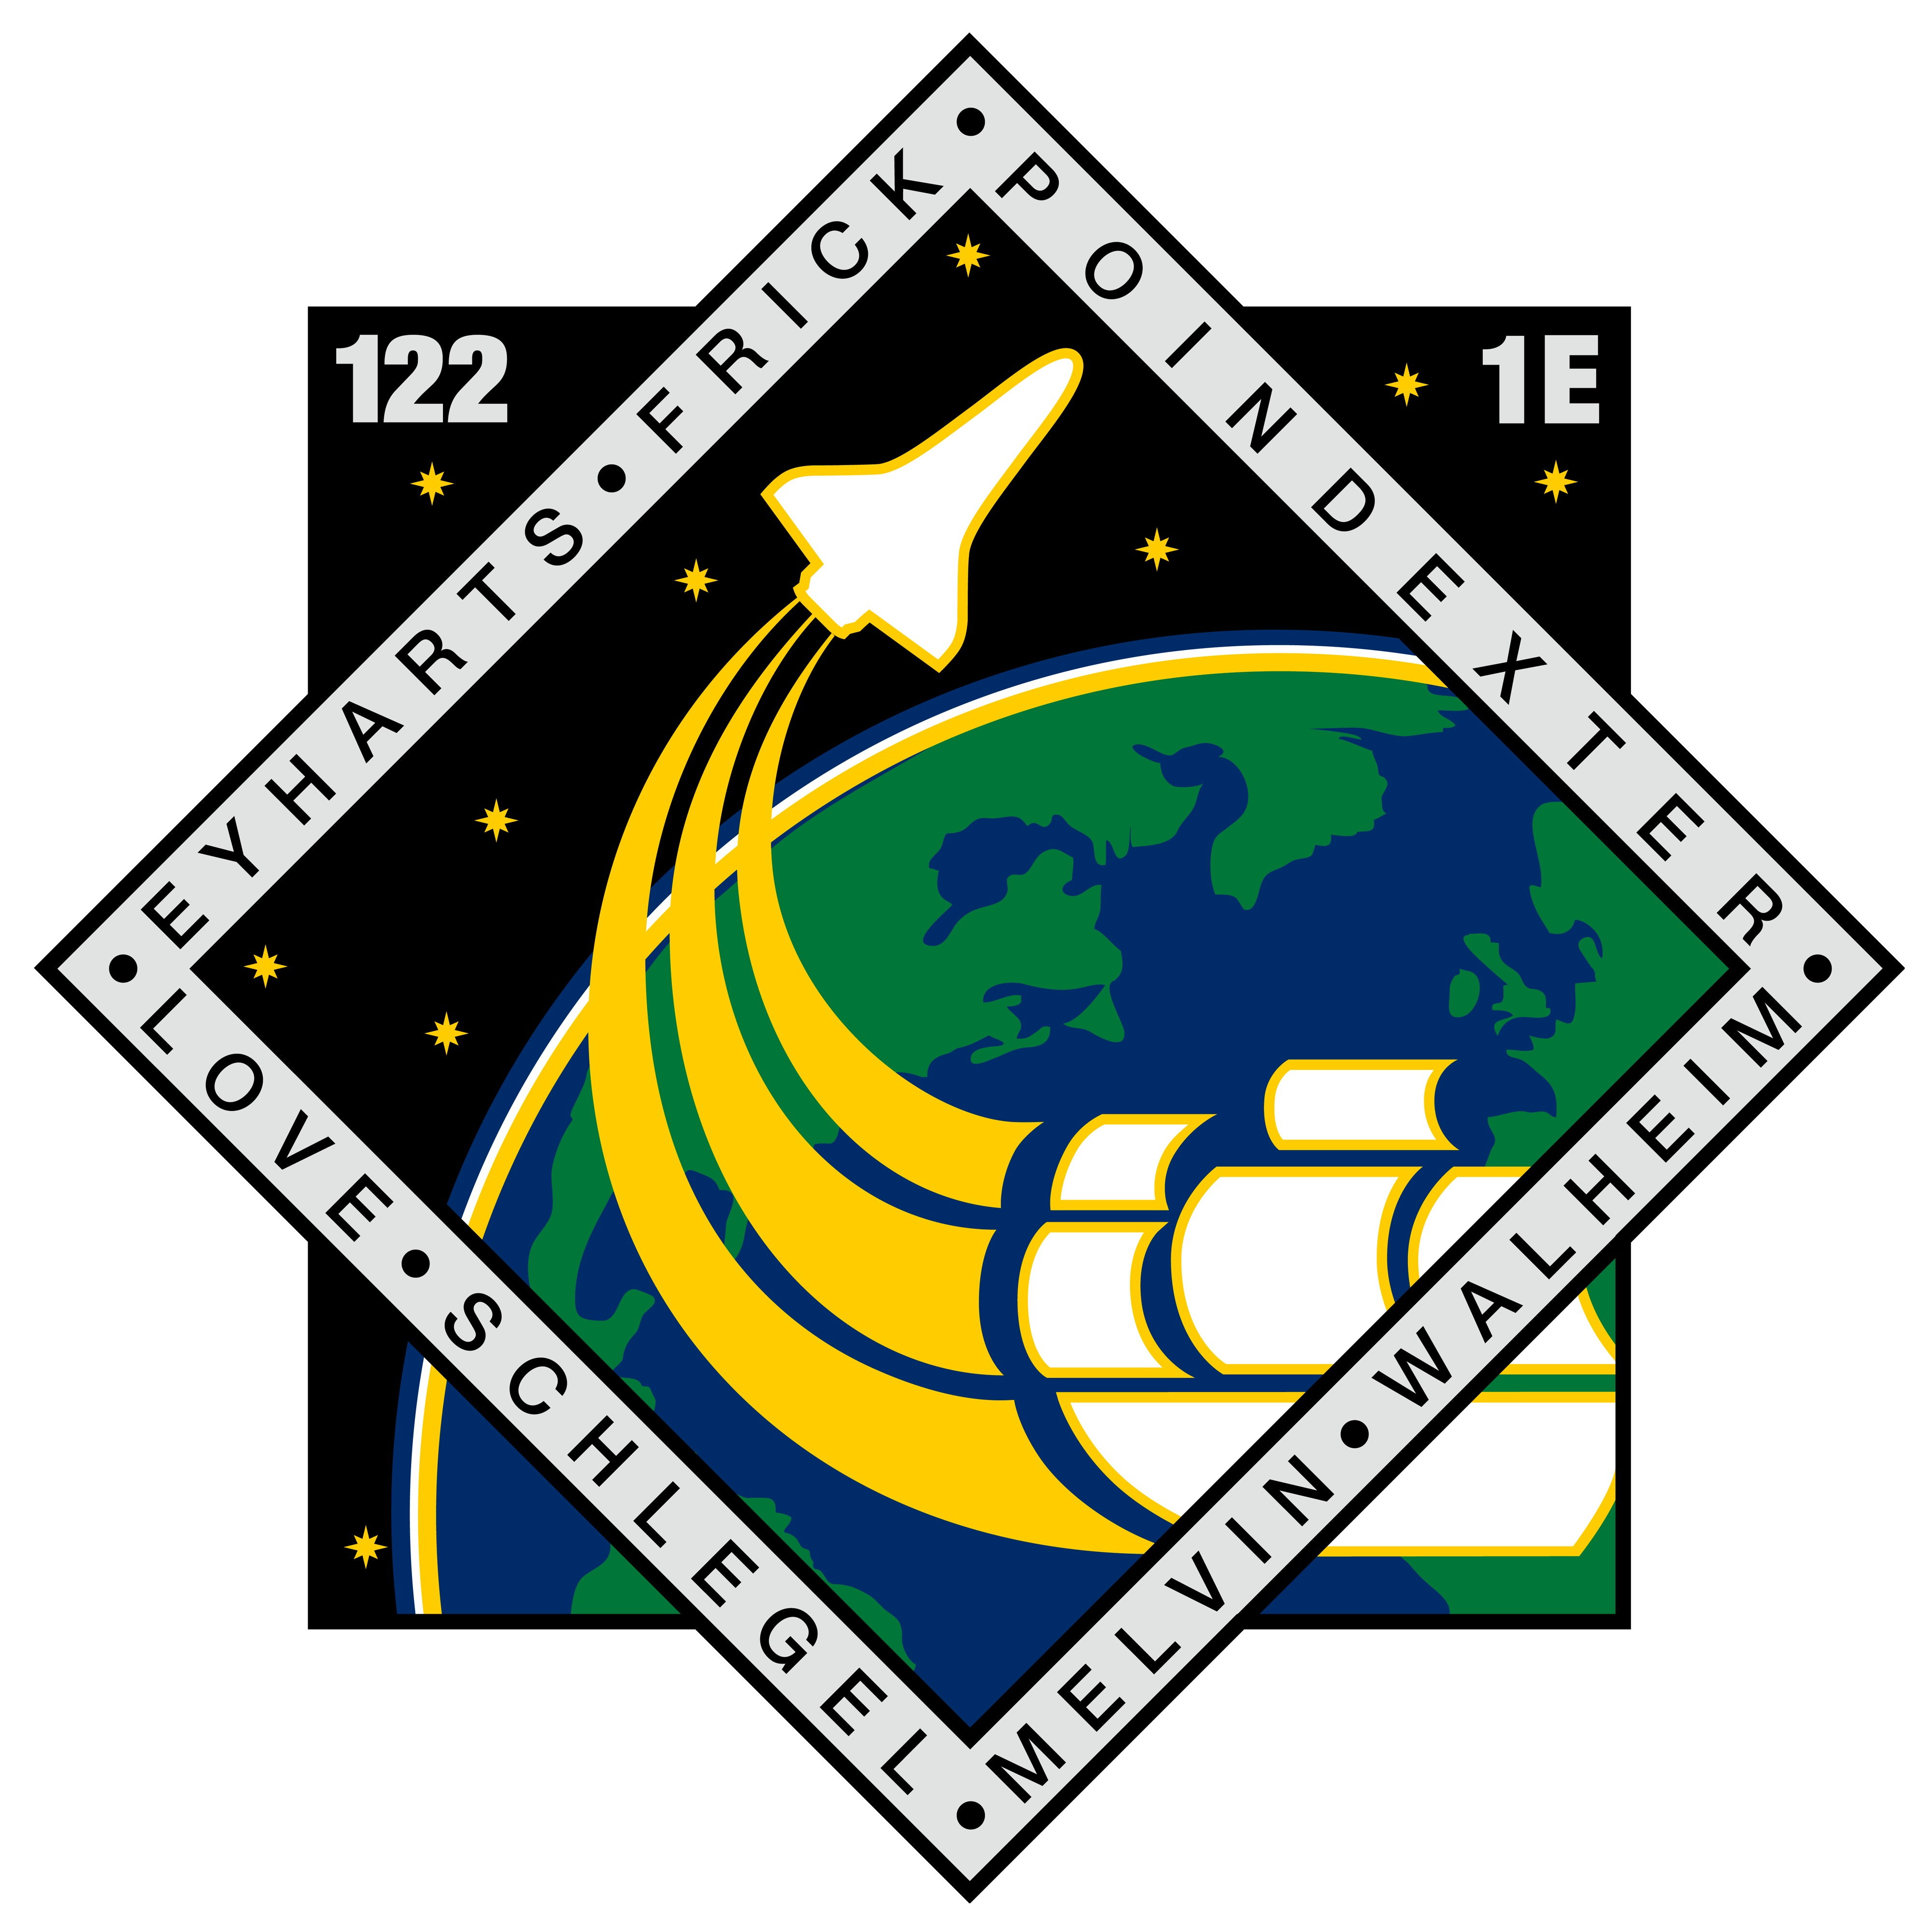 About the mission logos / Columbus / Human Spaceflight / Our ...